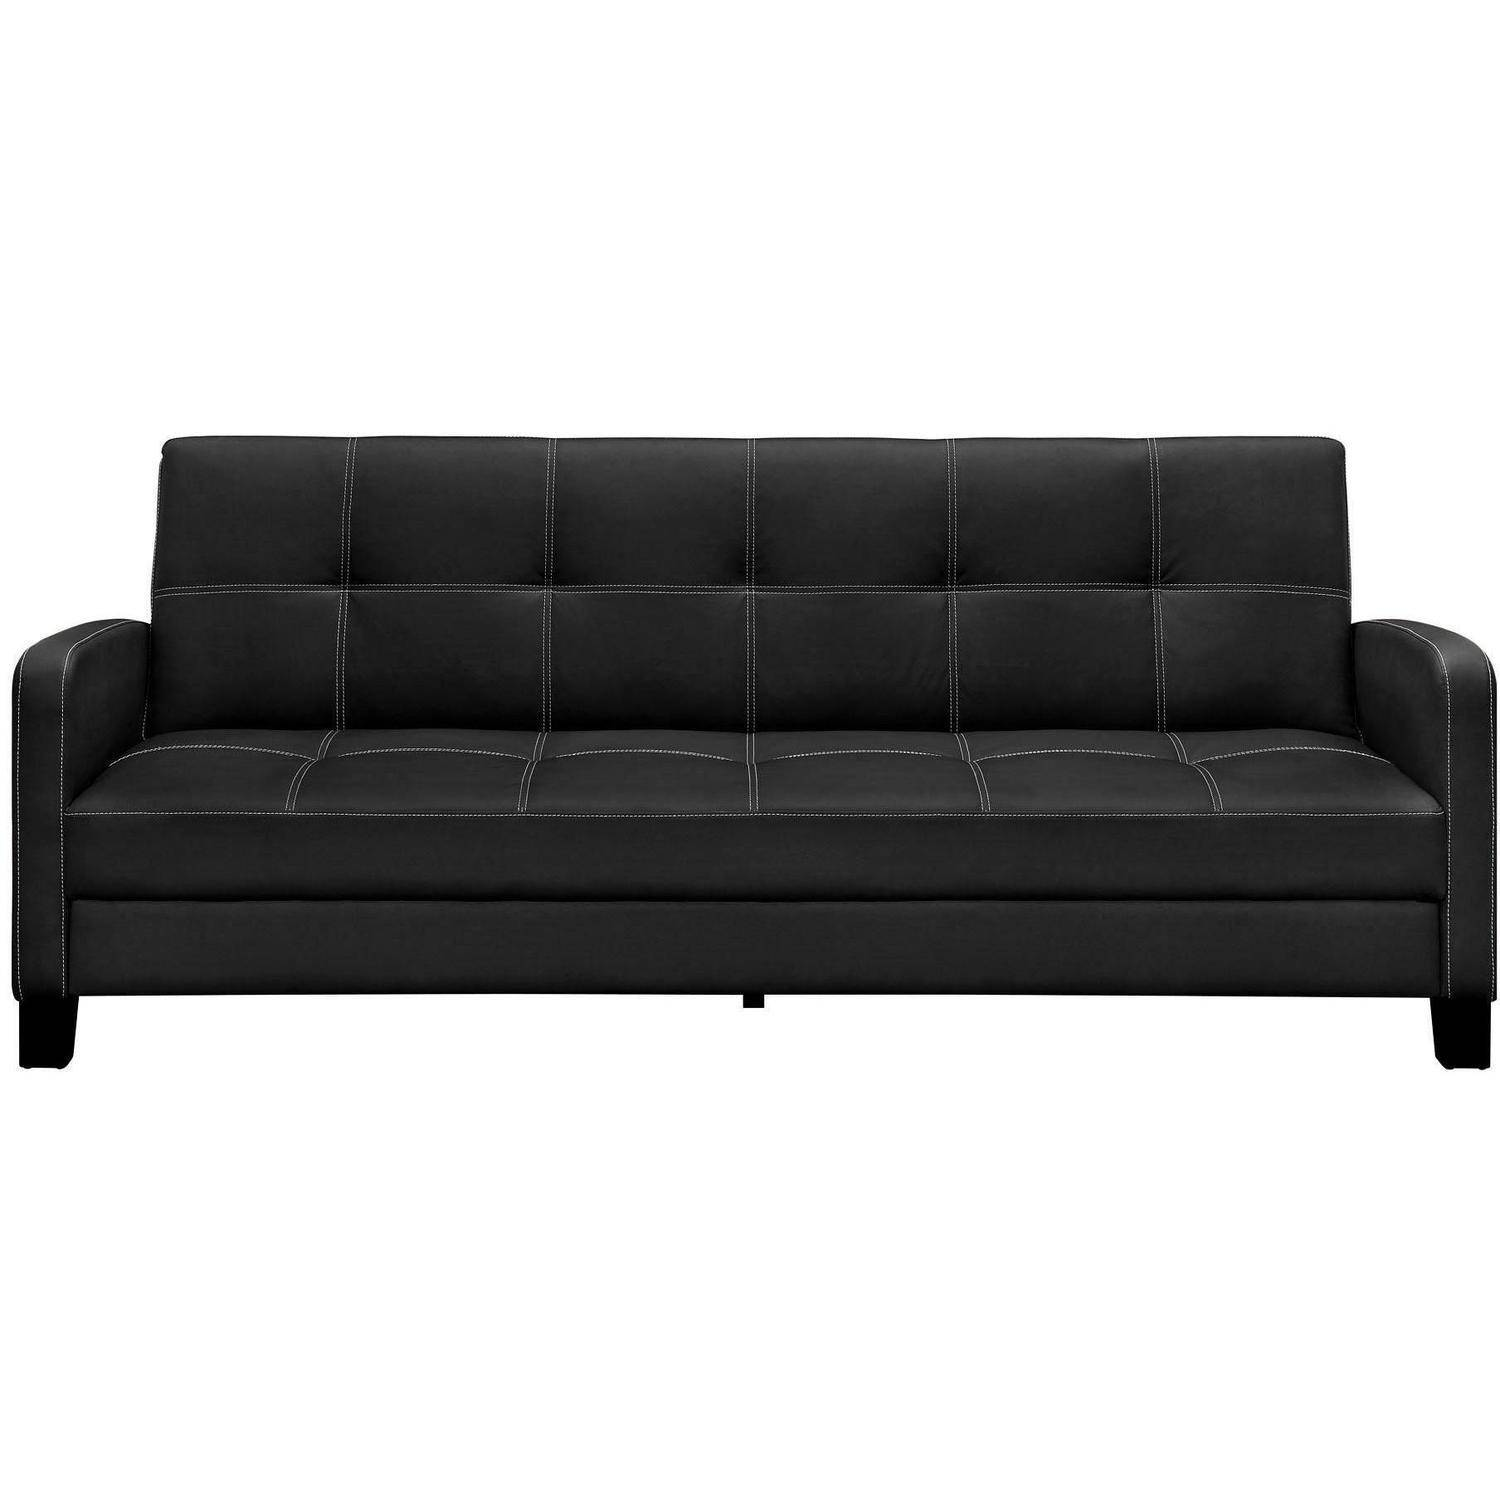 Black leather couch Rug Dhp Delaney Futon Couch Sofa Sleeper Multiple Colors Walmart Black Leather Couches Walmartcom